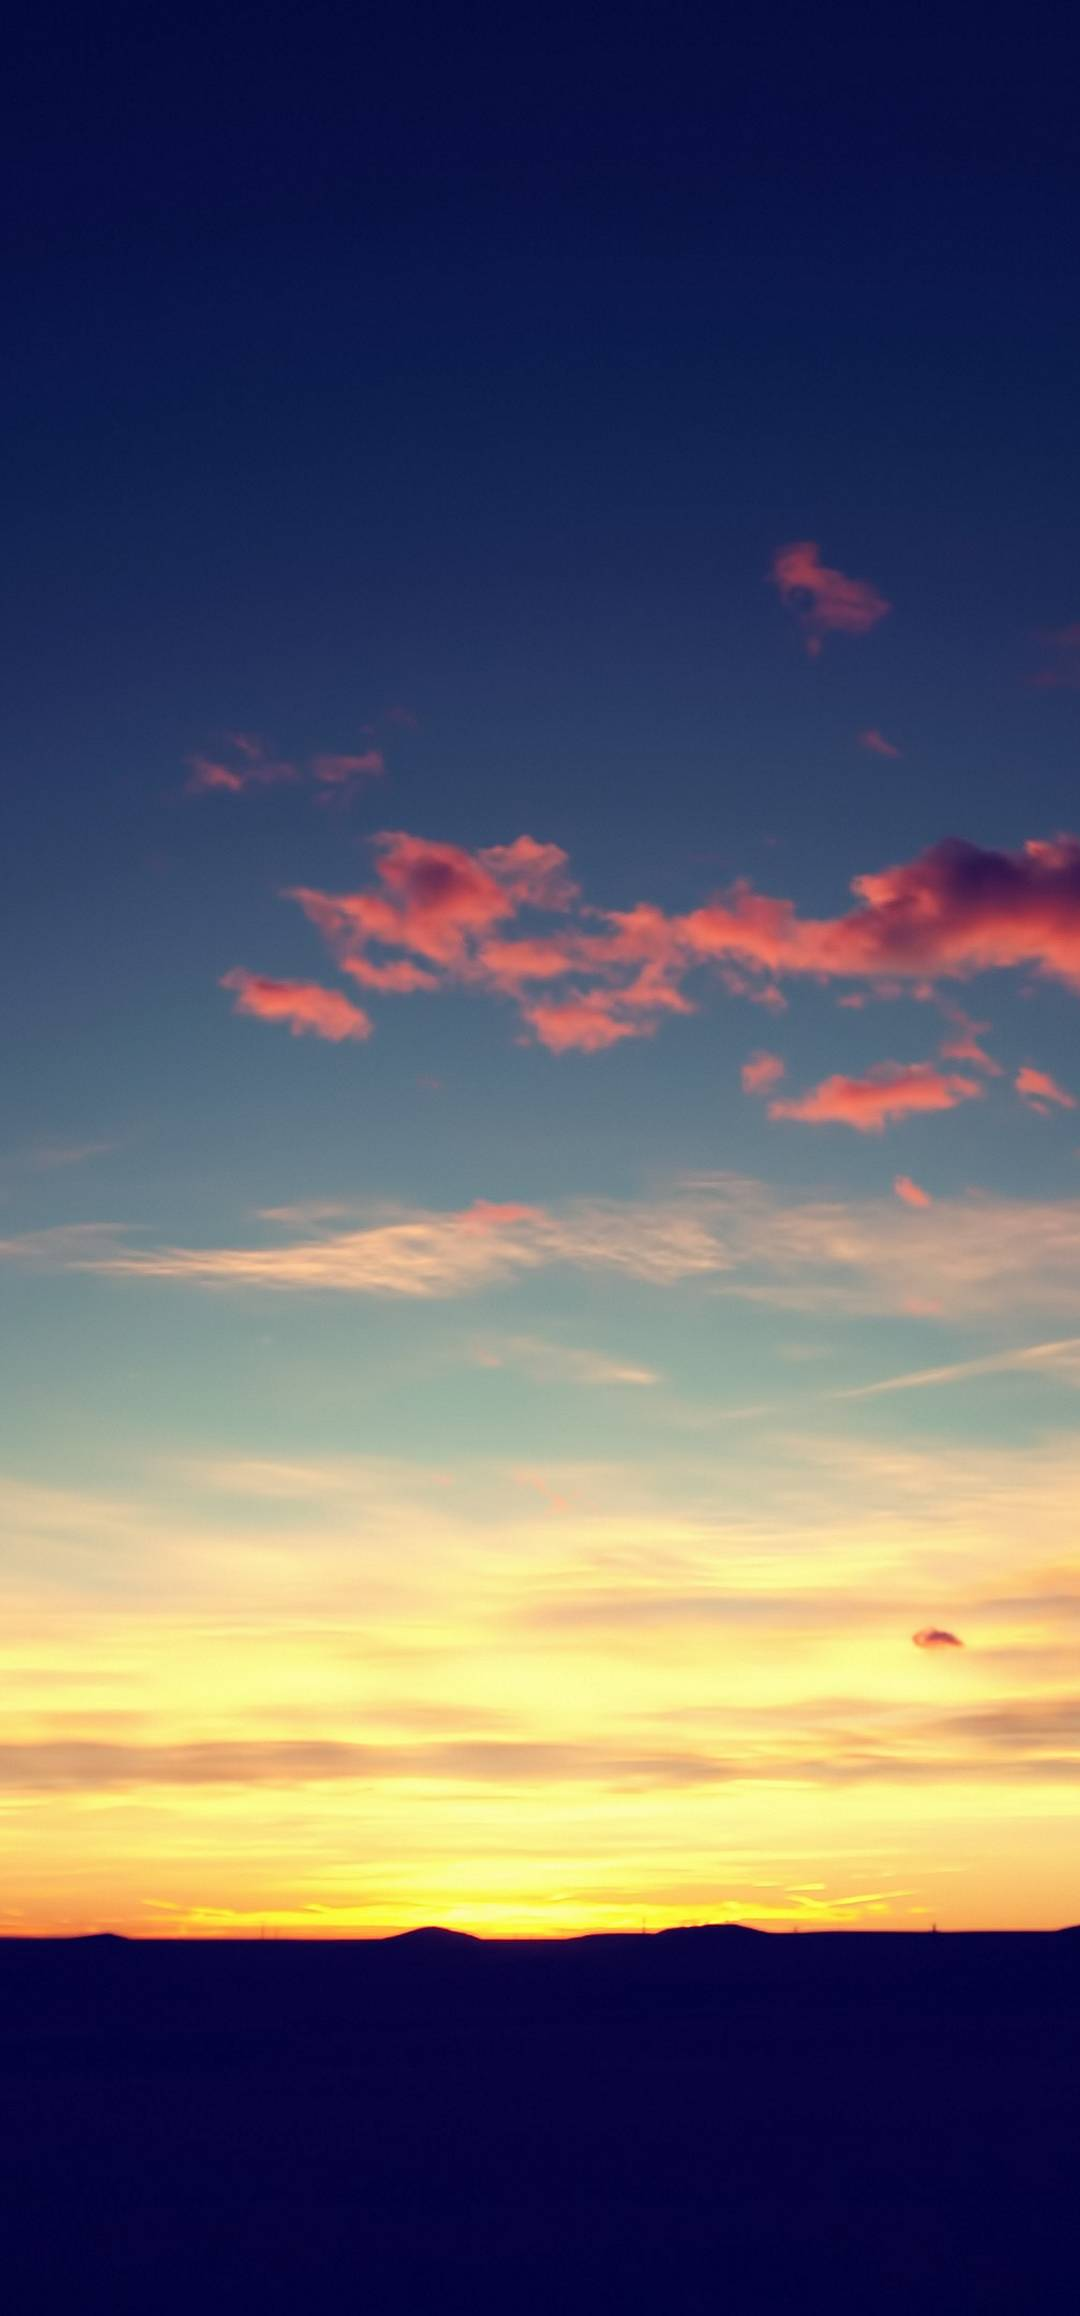 Sunset Sky Hd Wallpaper 1080x2316